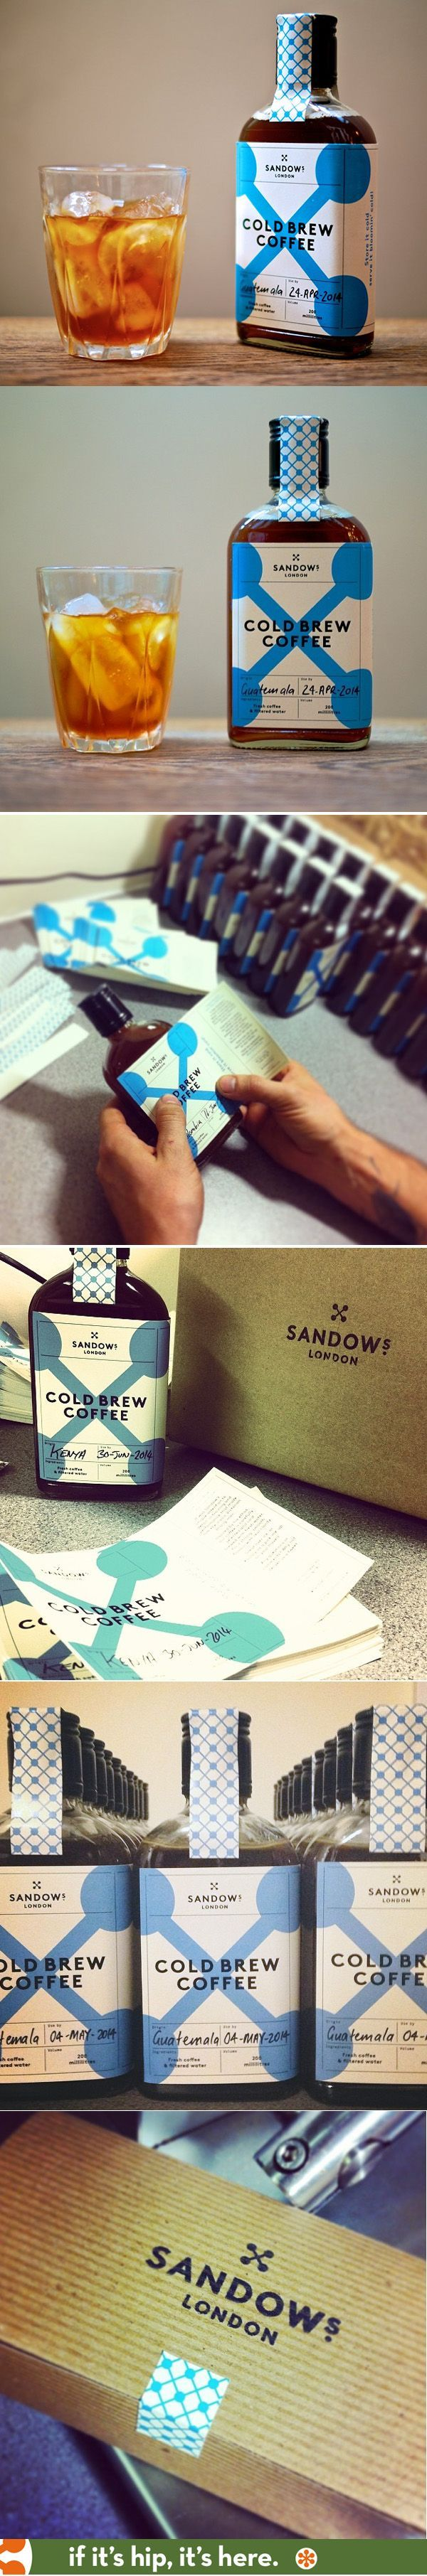 Love the old whiskey bottle look of this iced coffee packaging by Sandows of London! #packagingdesign